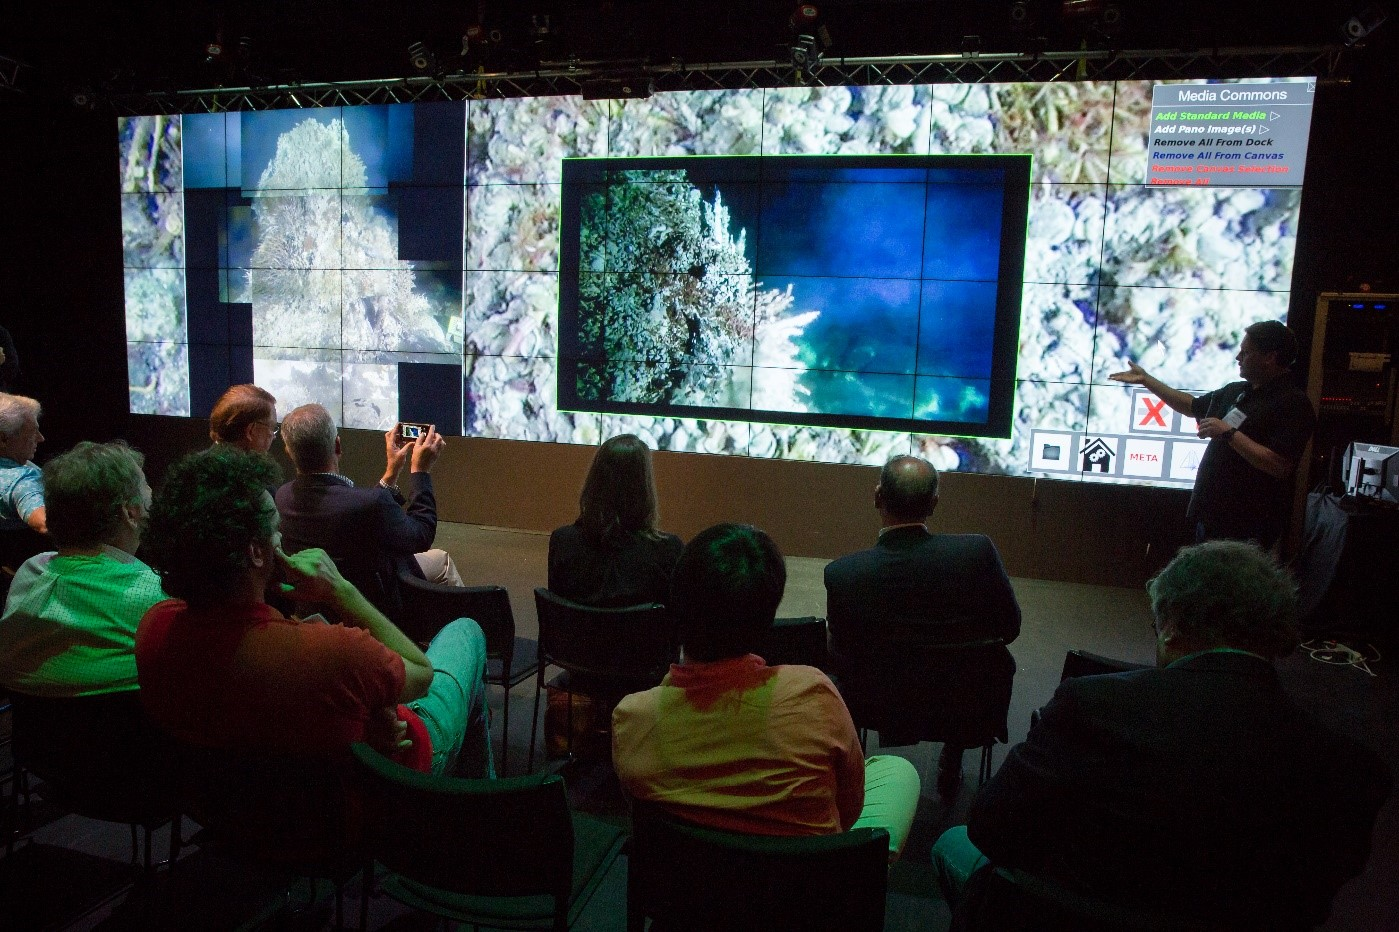 Figure 2. The large Video Wall in the Qualcomm Institute V-Room hosts several high-resolution images of the Mushroom structure, and a live feed of HD Video directly from the seafloor as an inset.  Audience members can be seen in the foreground, giving a sense of the size of the display (10 feet high x 36 feet long).